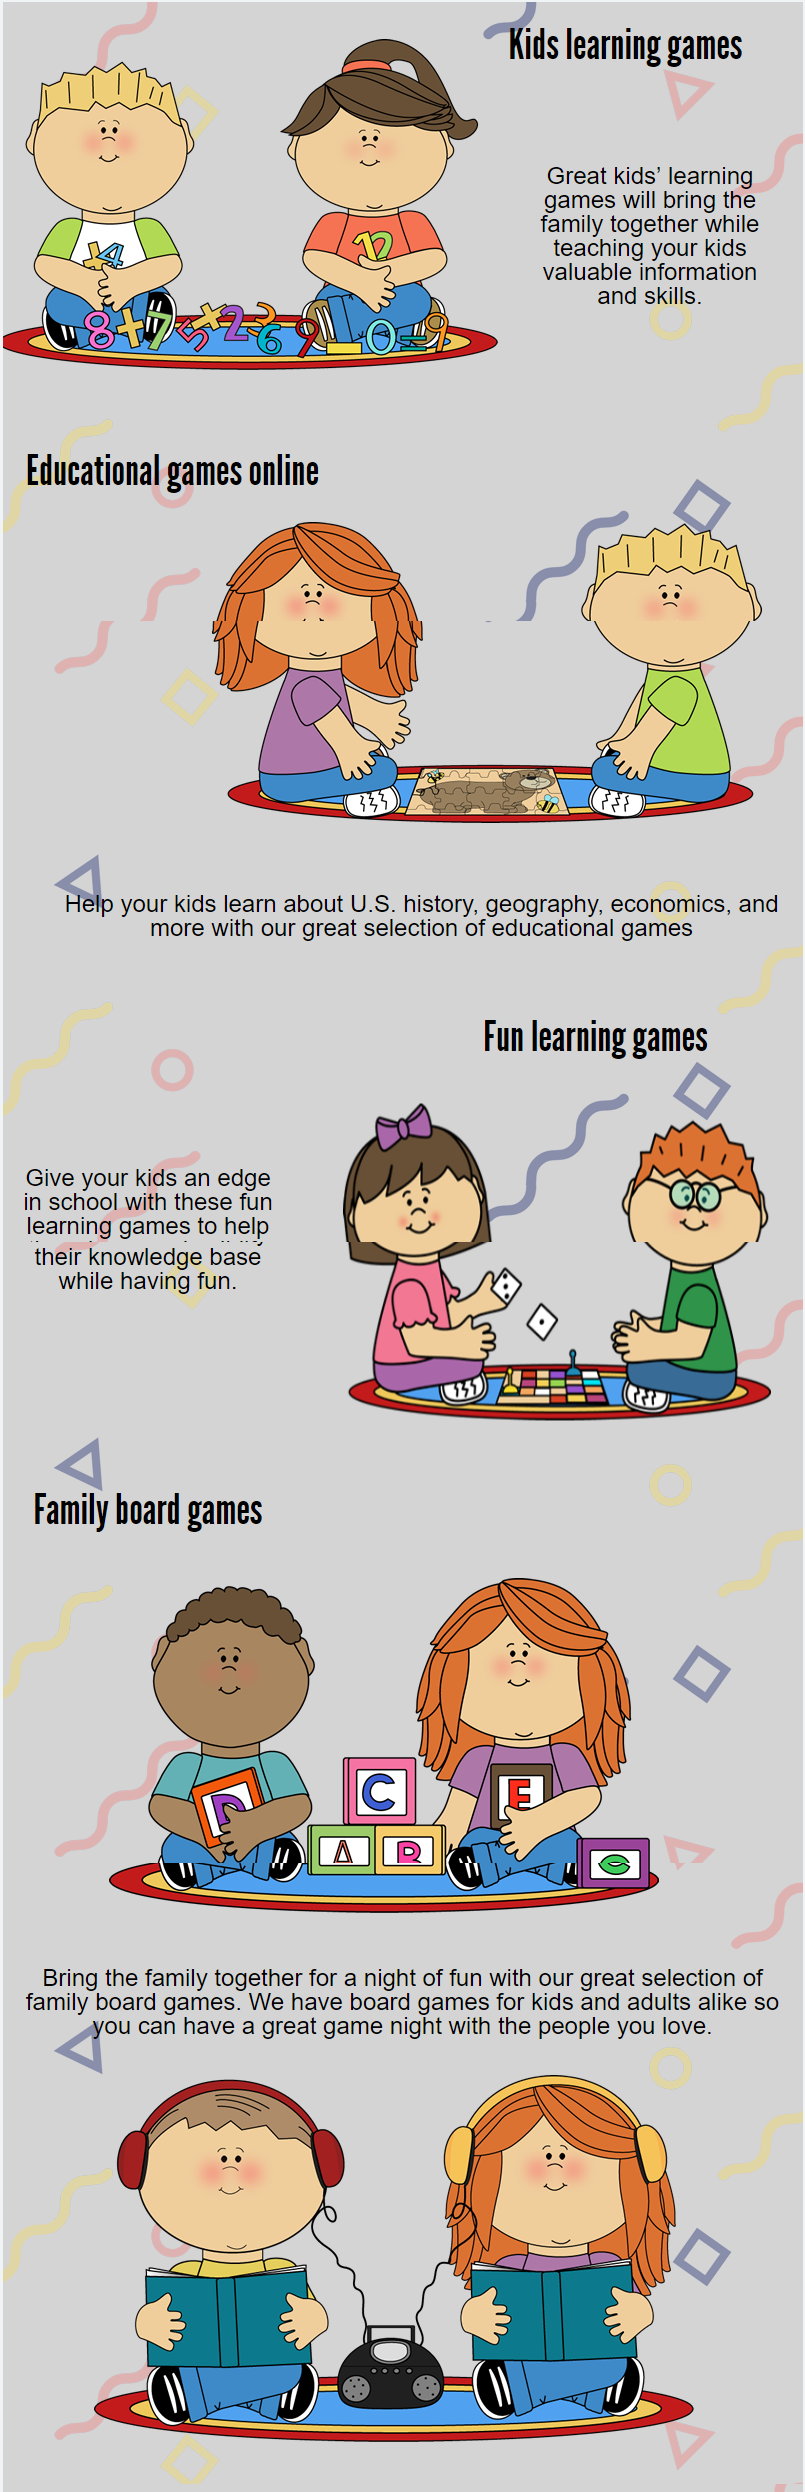 kids learning games will develop the basic learning skills of